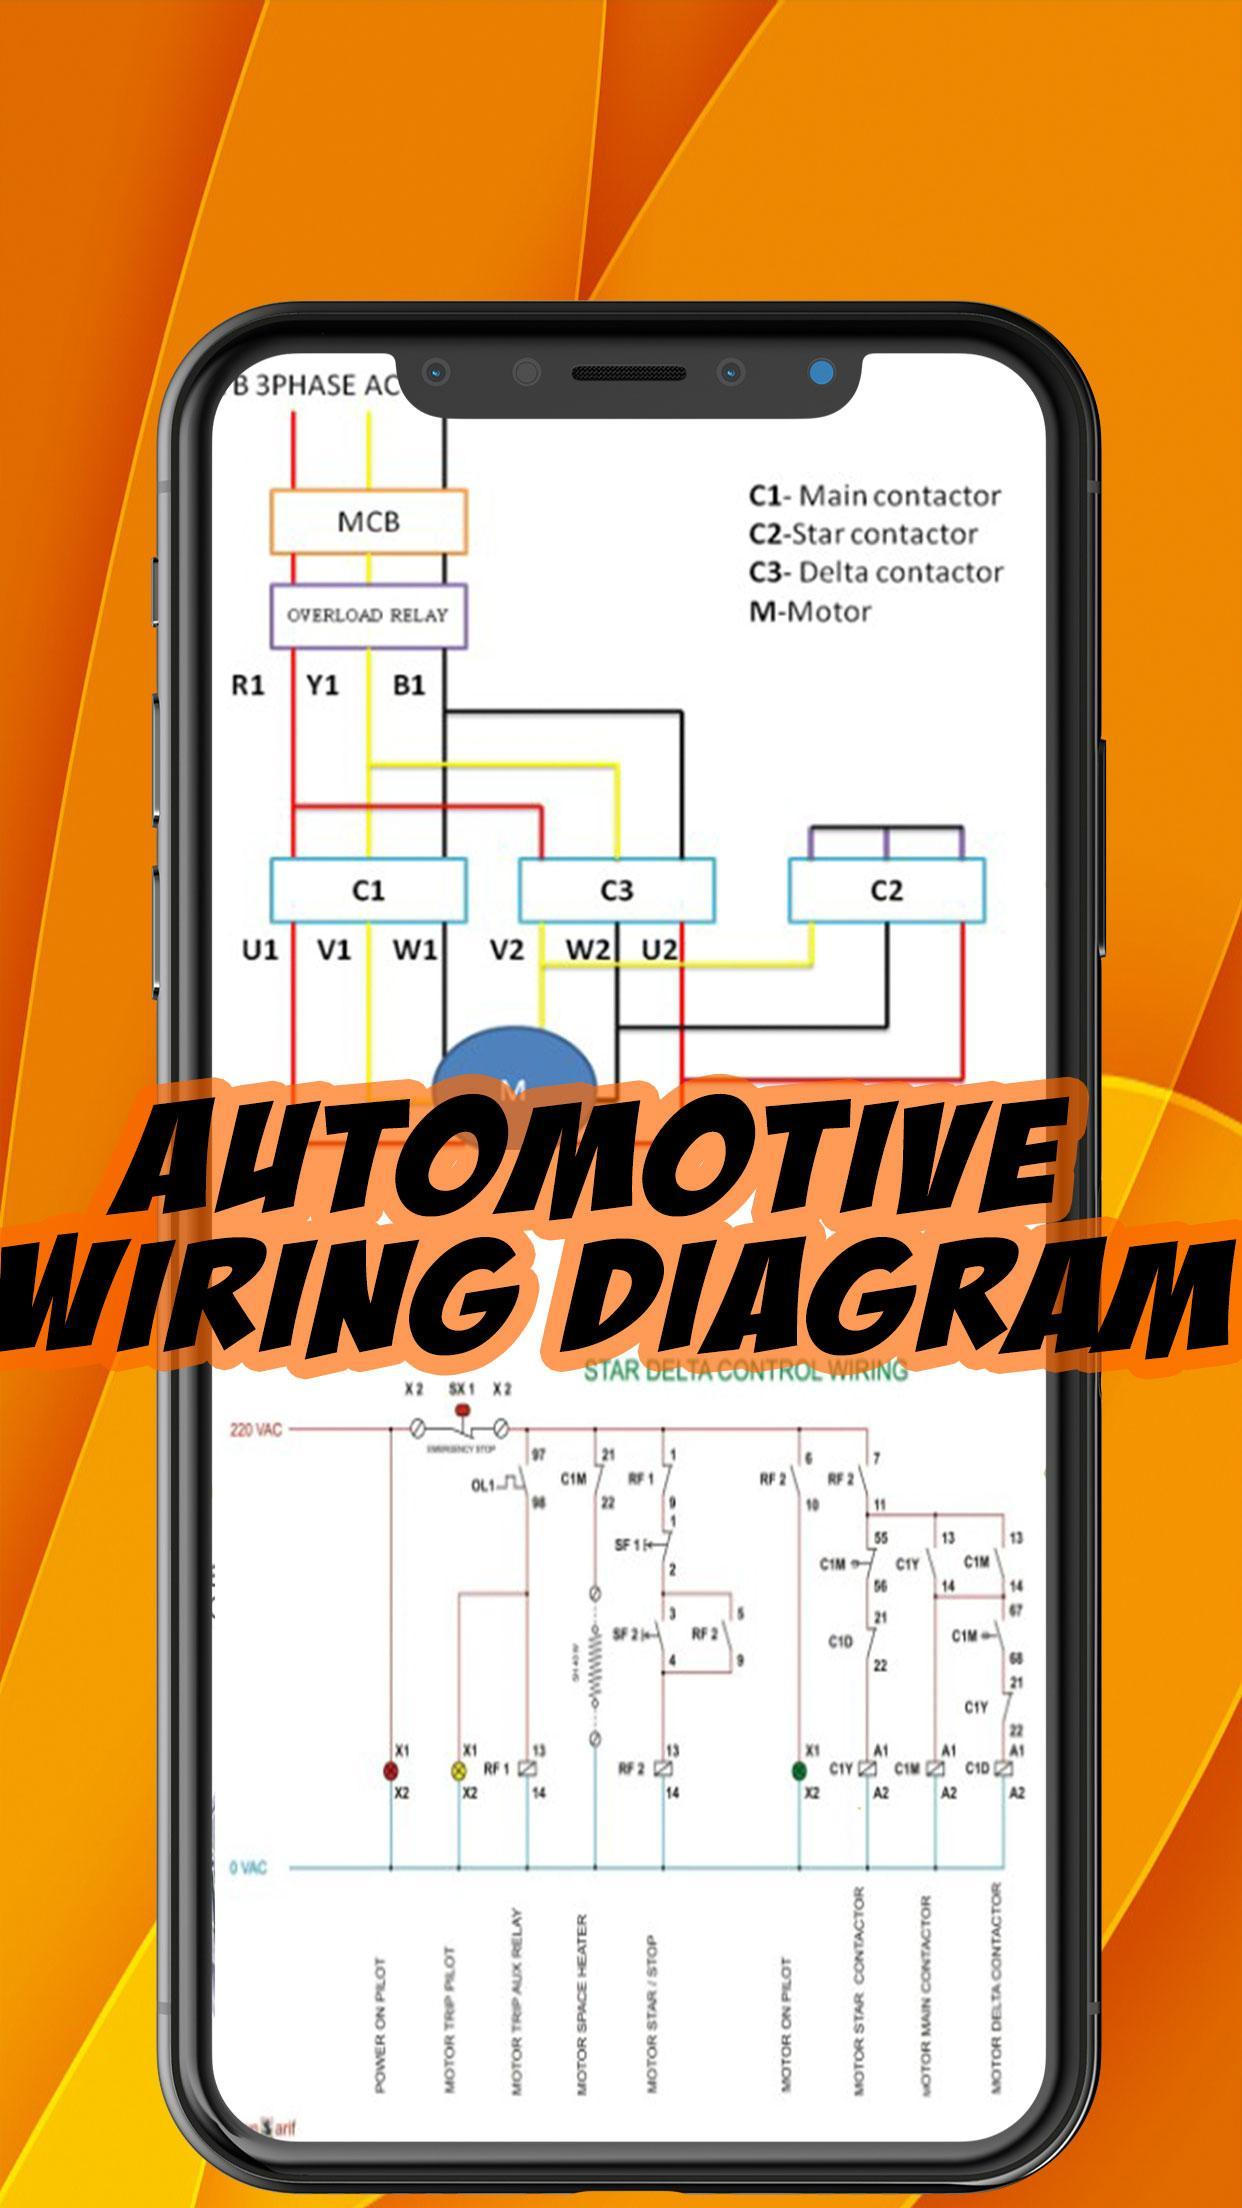 automotive wiring diagram app for Android - APK Download on